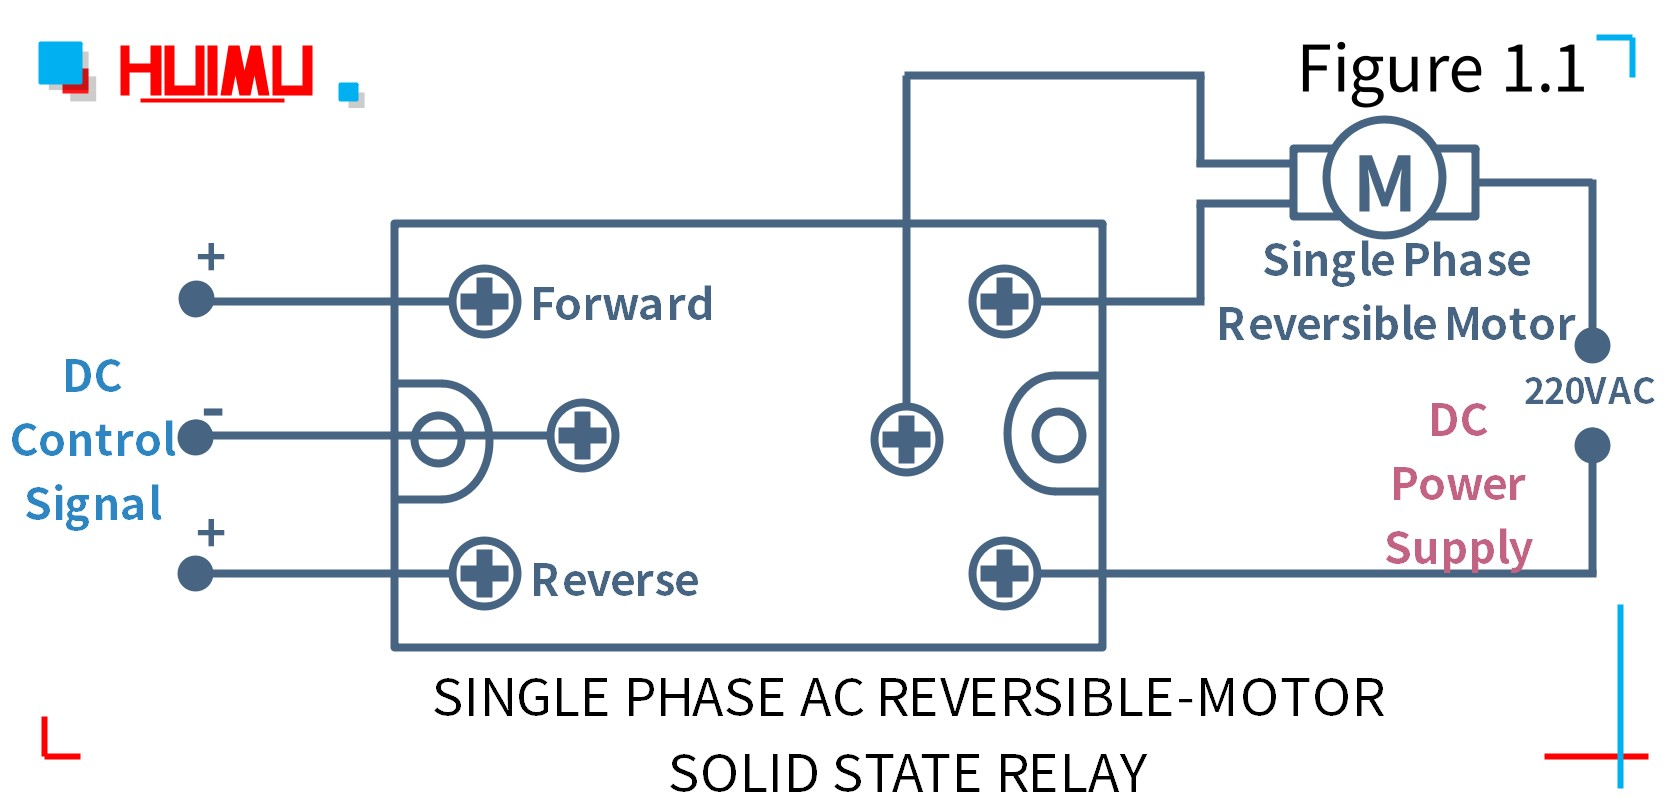 Single Phase Reversing Motor Wiring Diagram from www.huimultd.com